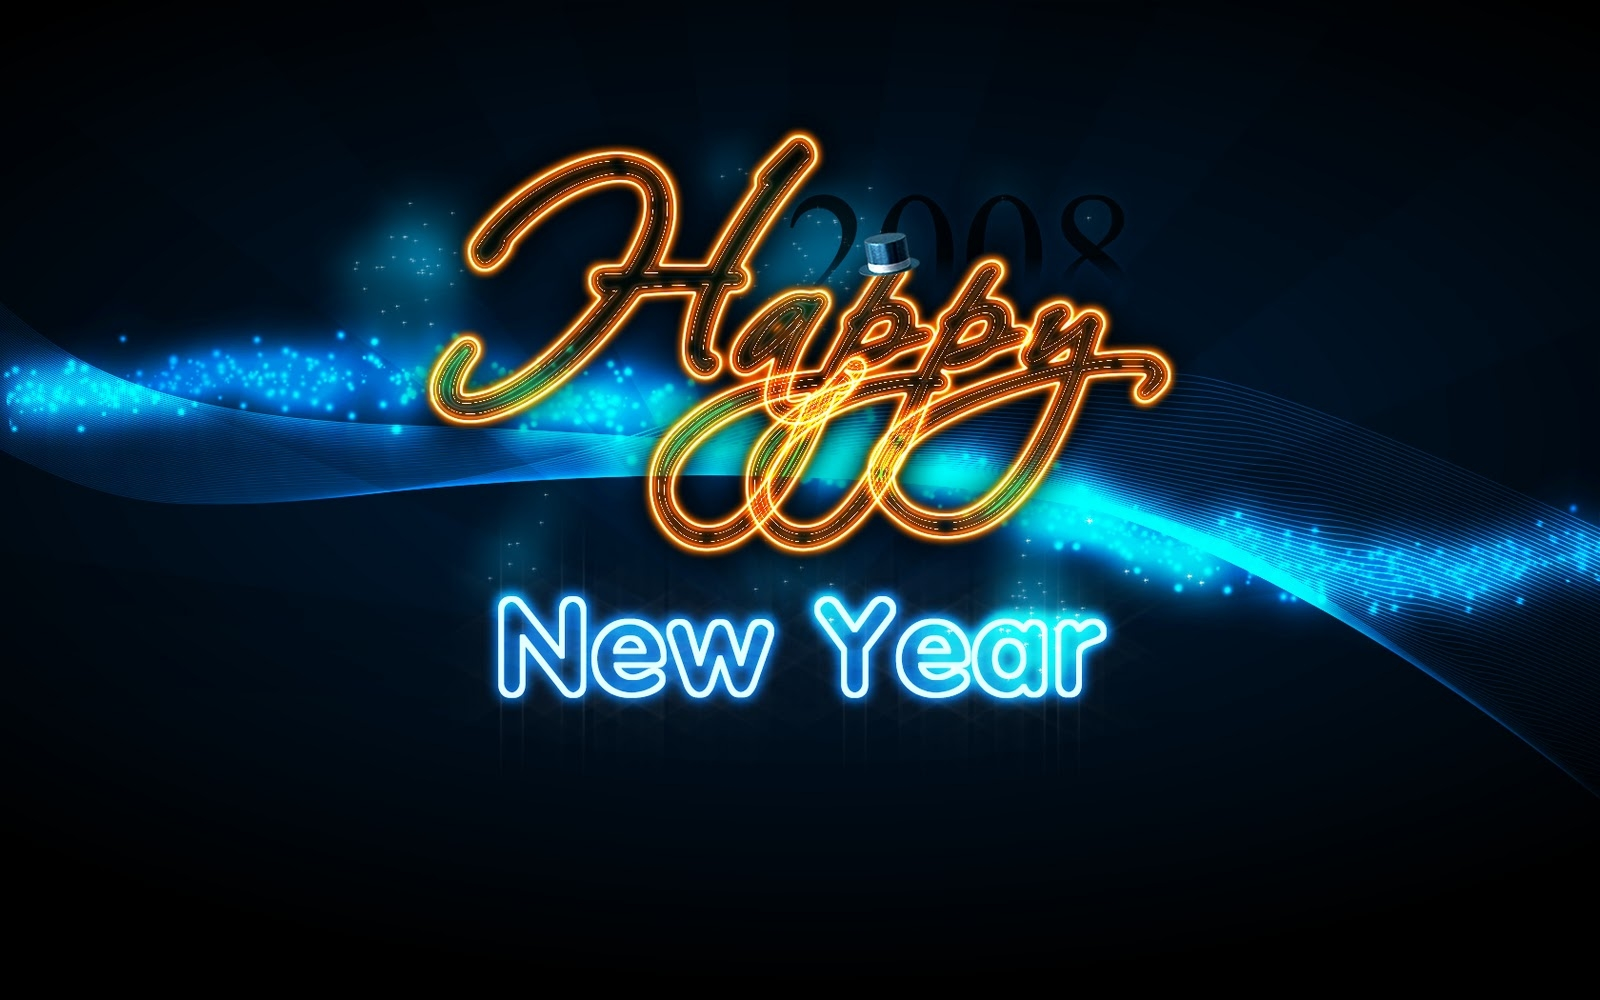 http://4.bp.blogspot.com/-2WauV5WhLGU/UKxuhGqhE4I/AAAAAAAAB_Q/YZAbgQo92Gw/s1600/free-happy-new-year-2013-best-wishes-most-beautiful-greetings-photo-cards-wallpapers-005.jpg